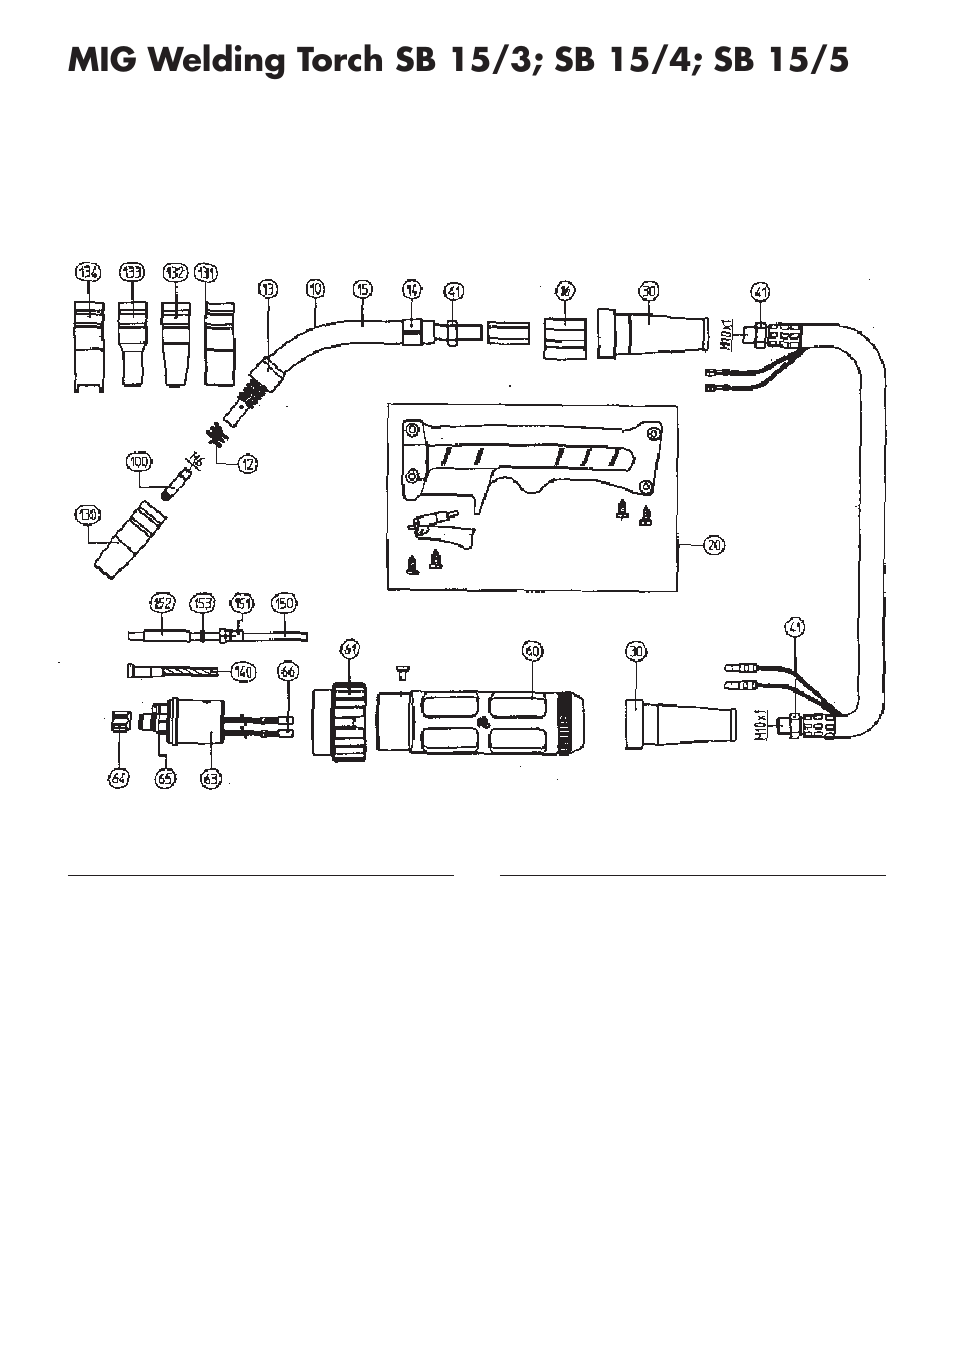 Metabo Electra Beckum Mig Mag 170 30 Tl User Manual Page 14 17 Wiring Diagram Also For Combi 180 35 Et